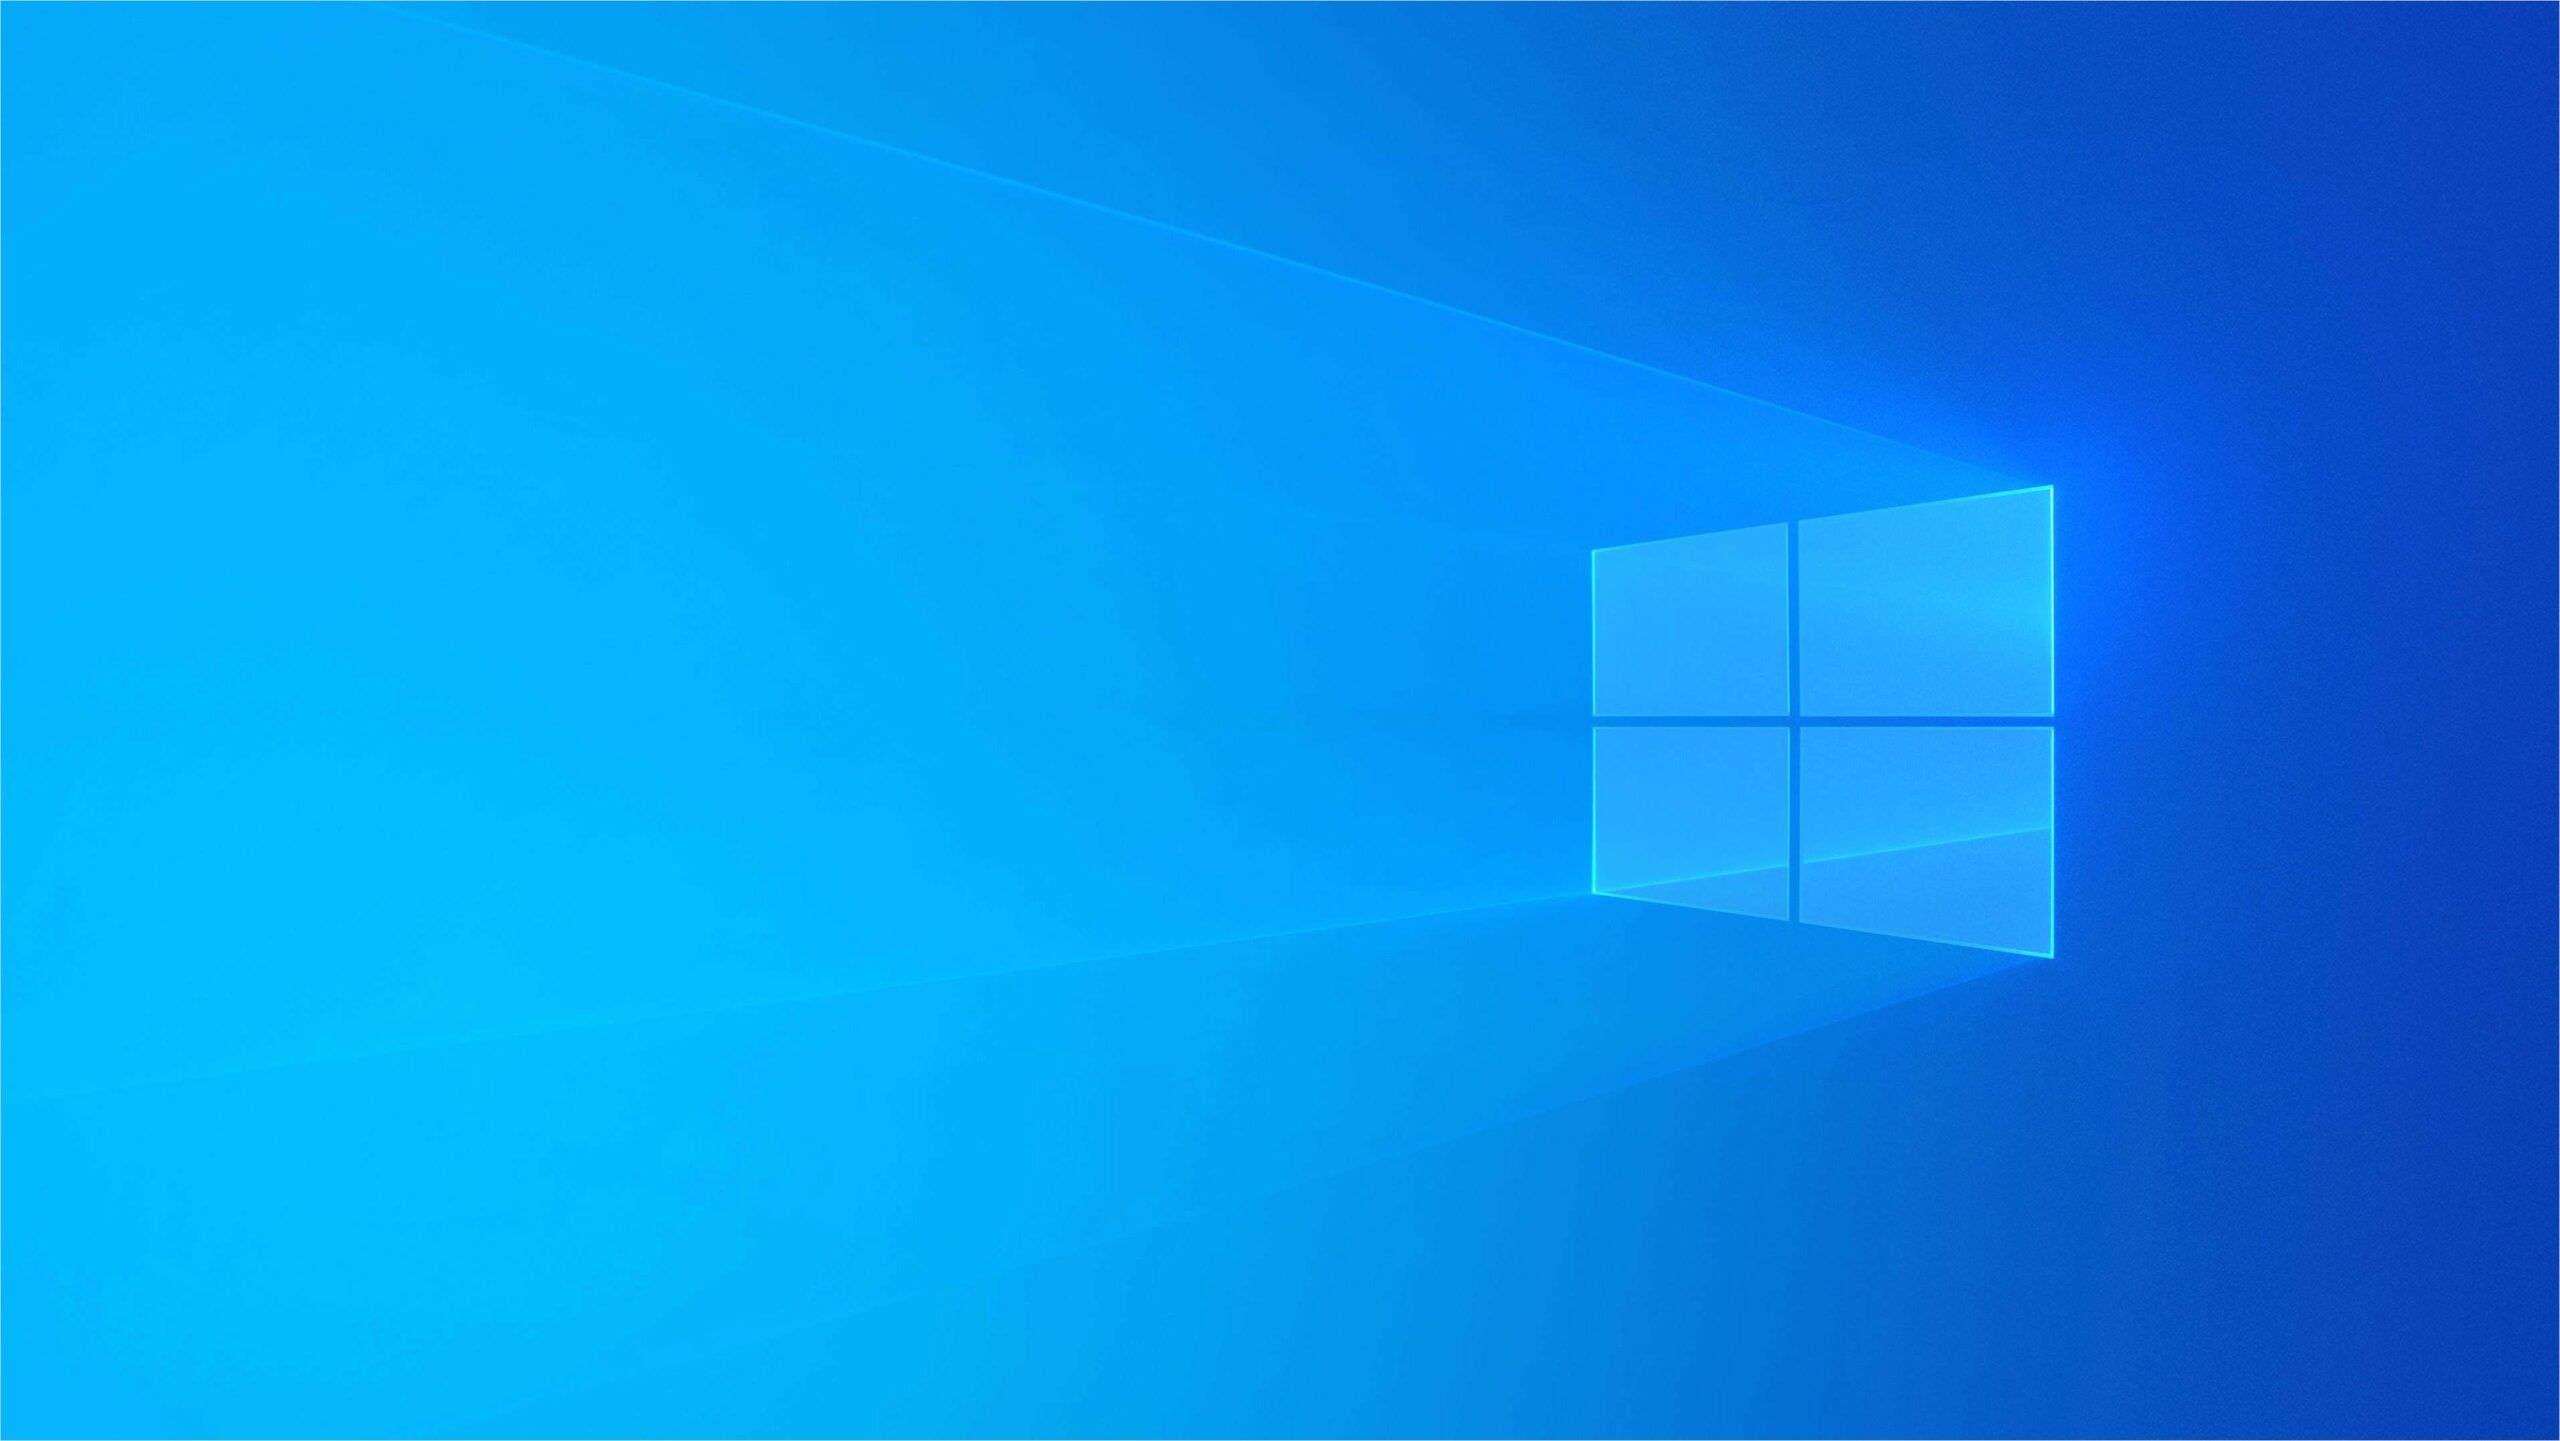 2160p Window 10 Wallpaper 4k In 2020 Wallpaper Windows 10 Microsoft Windows Windows 10